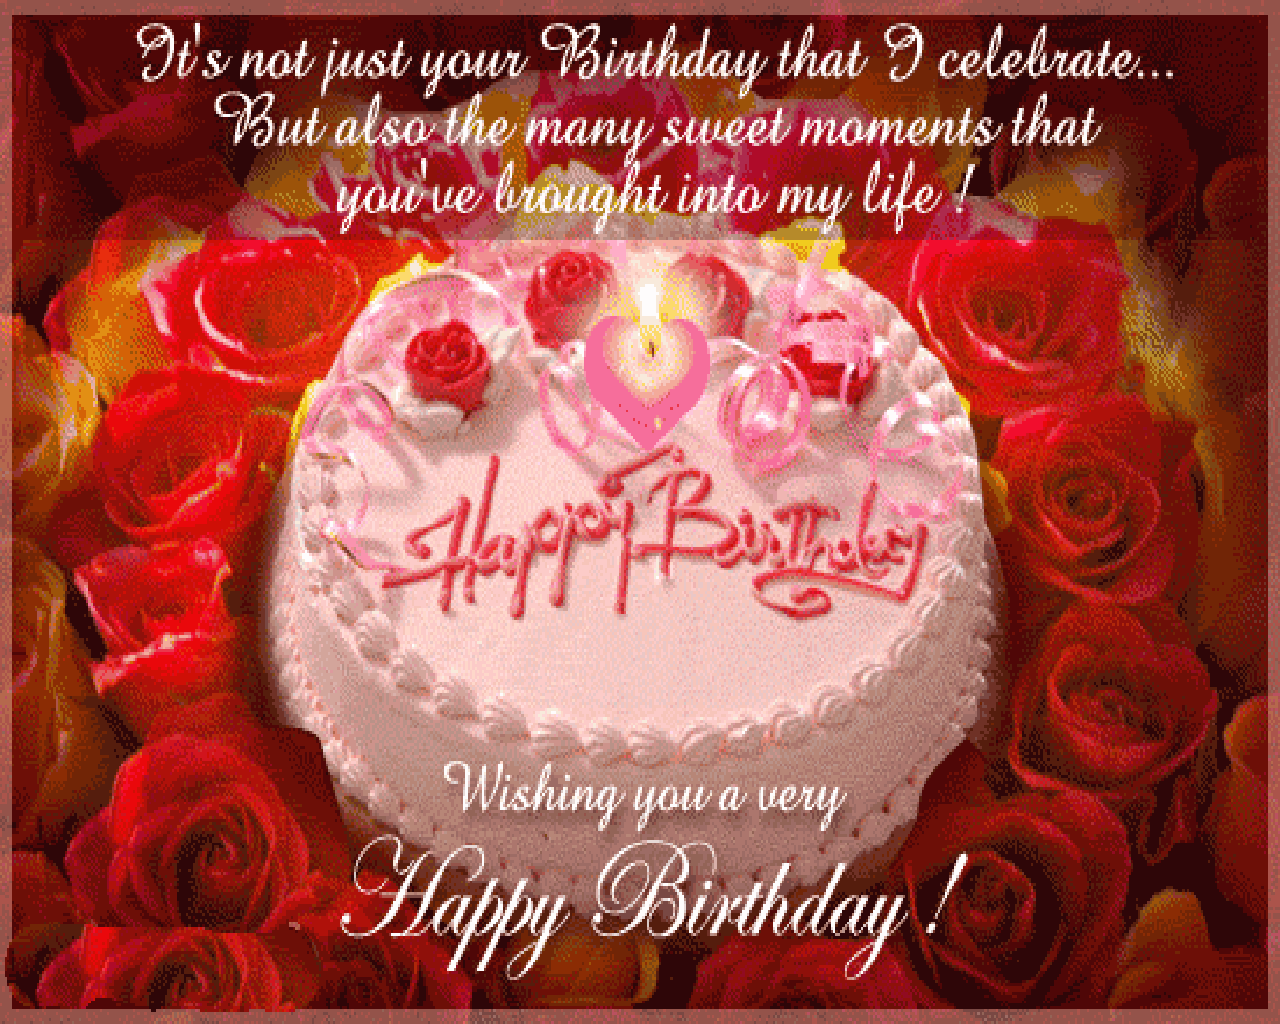 Happy Birthday Cards Messages HAPPY BIRTHDAY CARDS – Best Online Birthday Cards